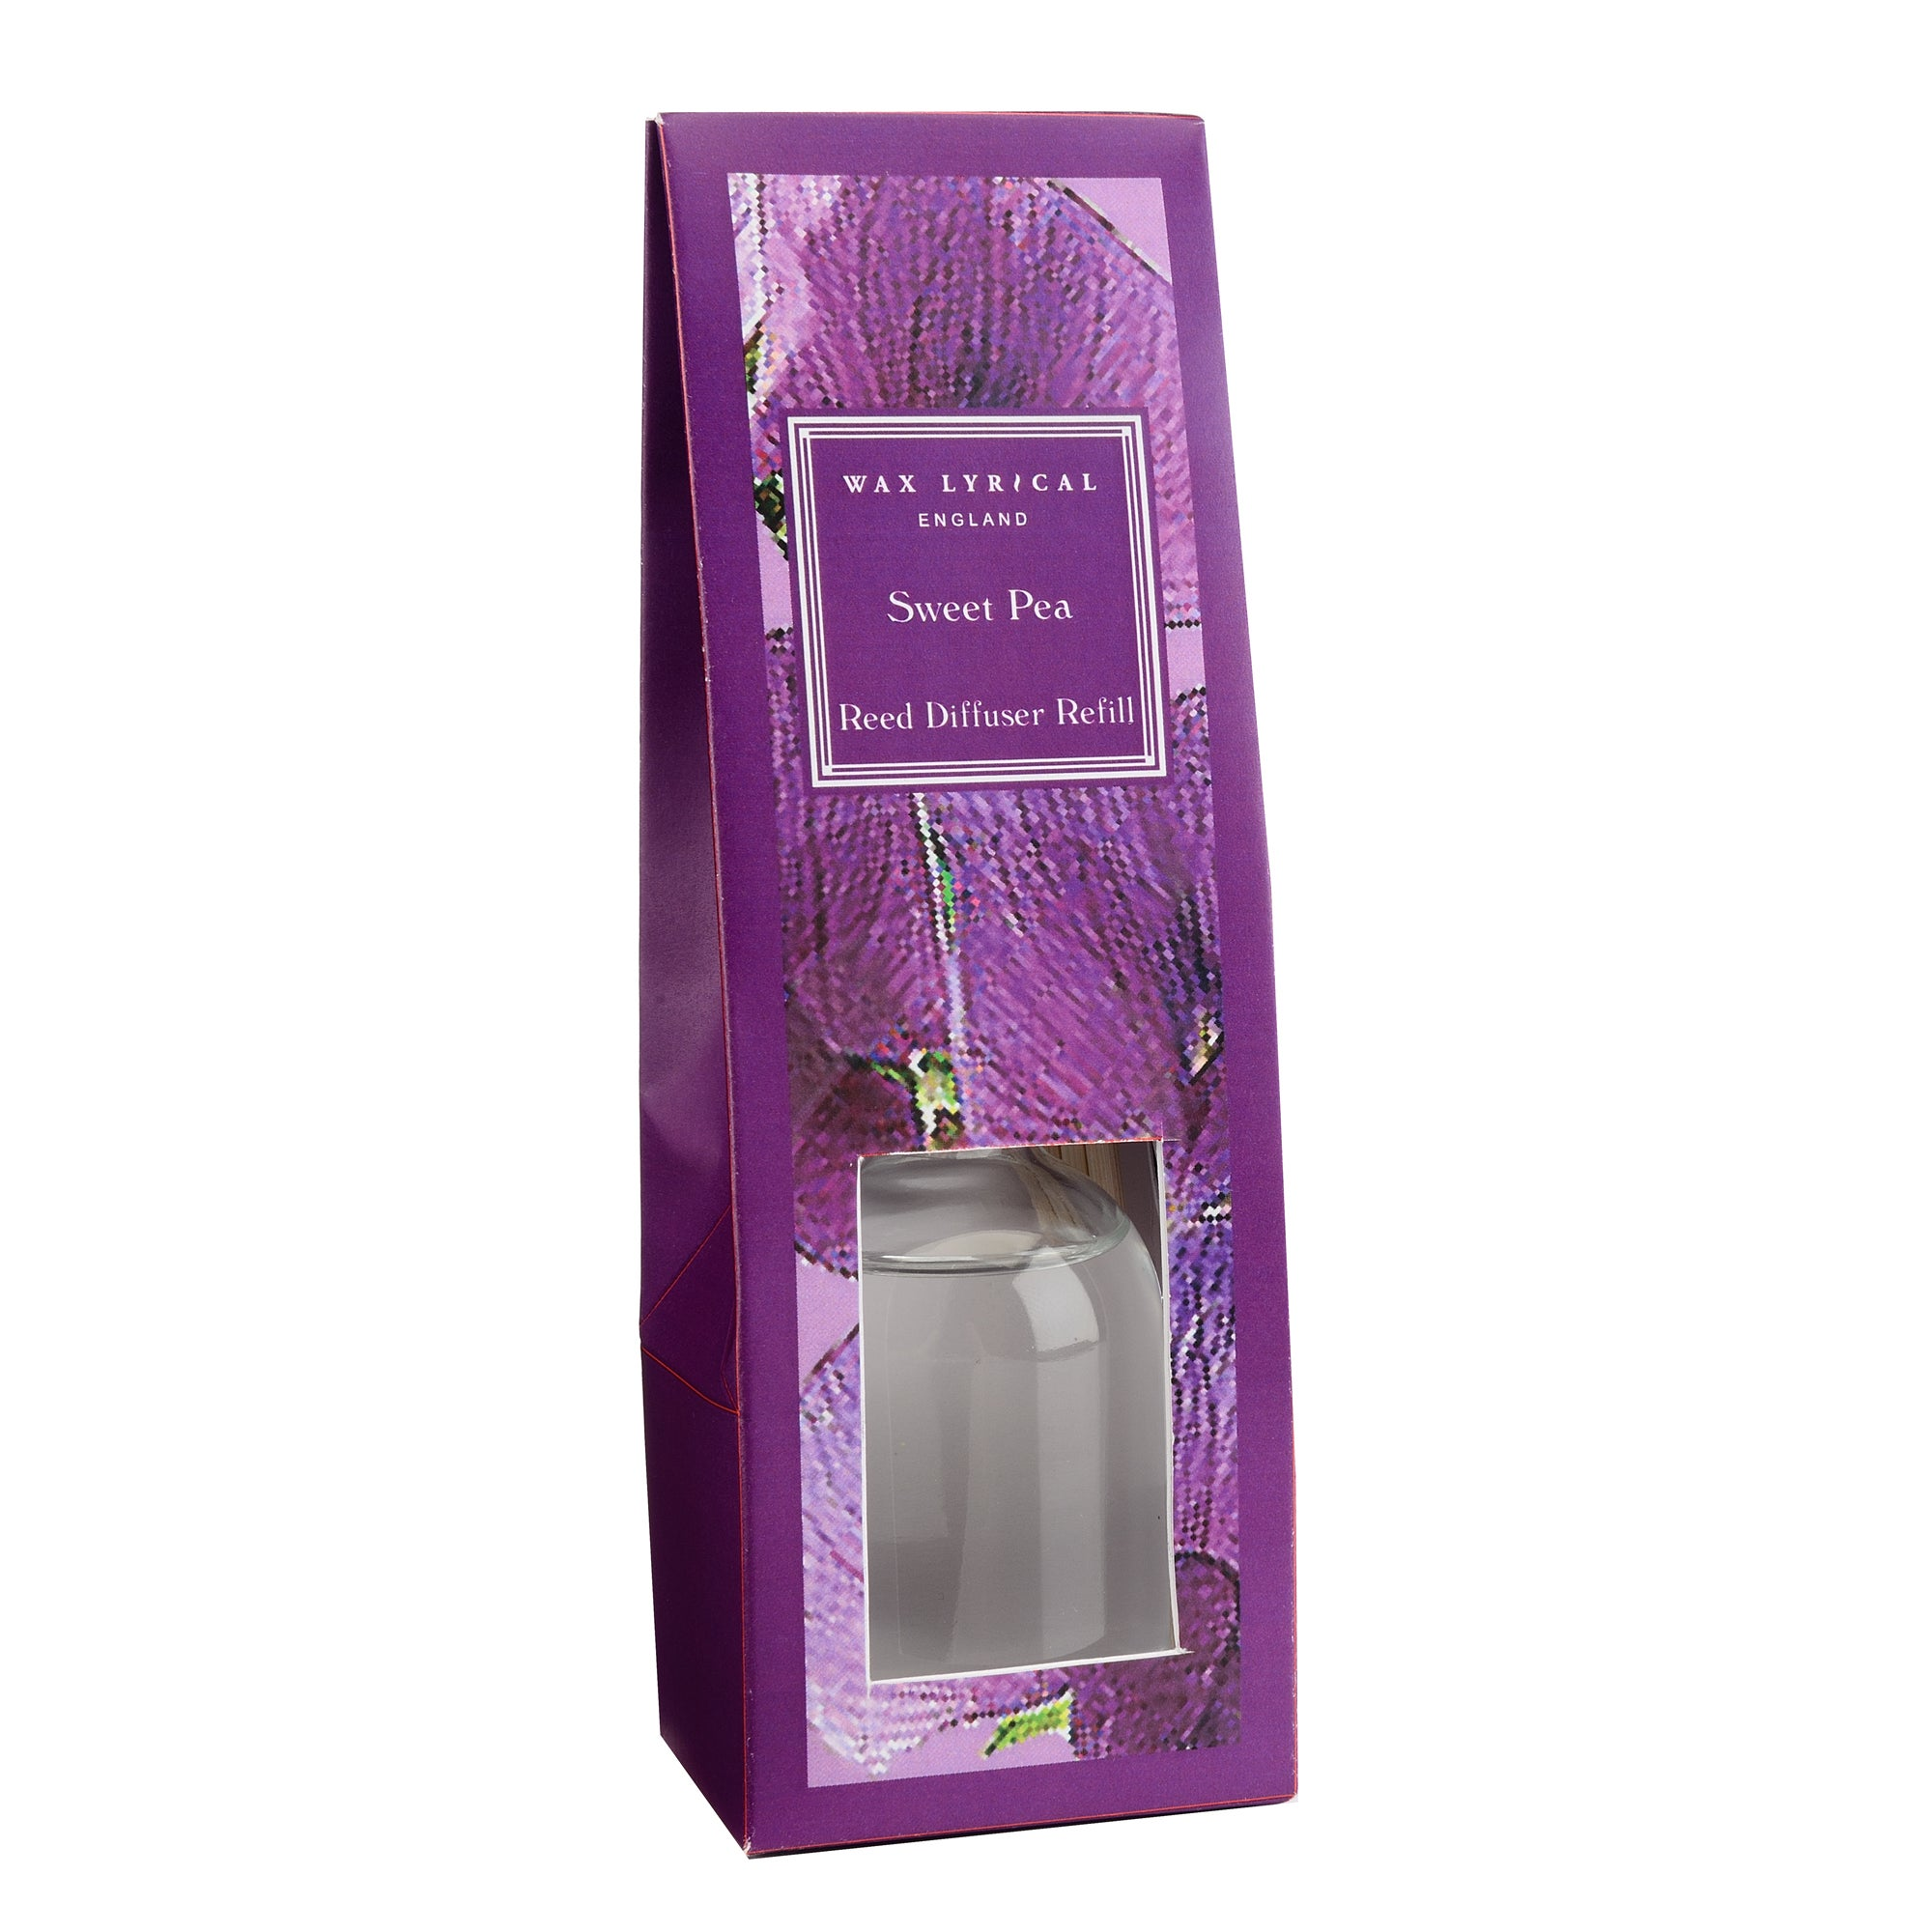 Wax Lyrical Sweet Pea 50ml Reed Diffuser